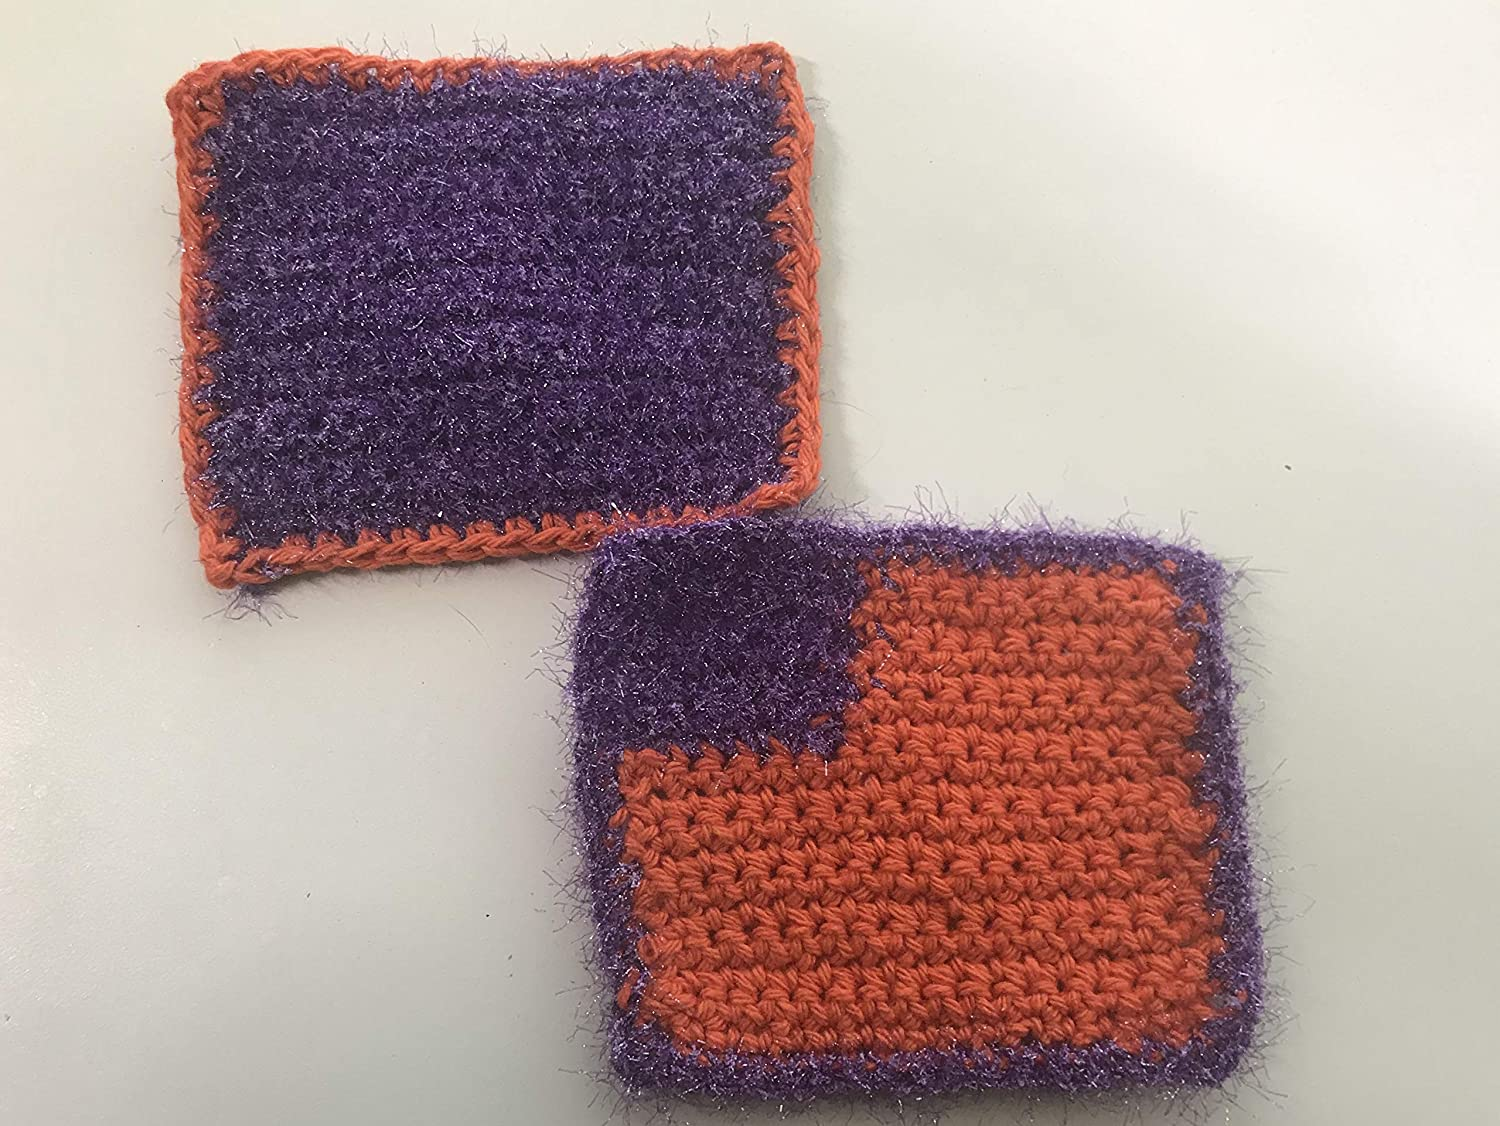 TEAM COLORS - Max 56% OFF Sparkly with Virginia Beach Mall Corner Scrubby Dishcloth